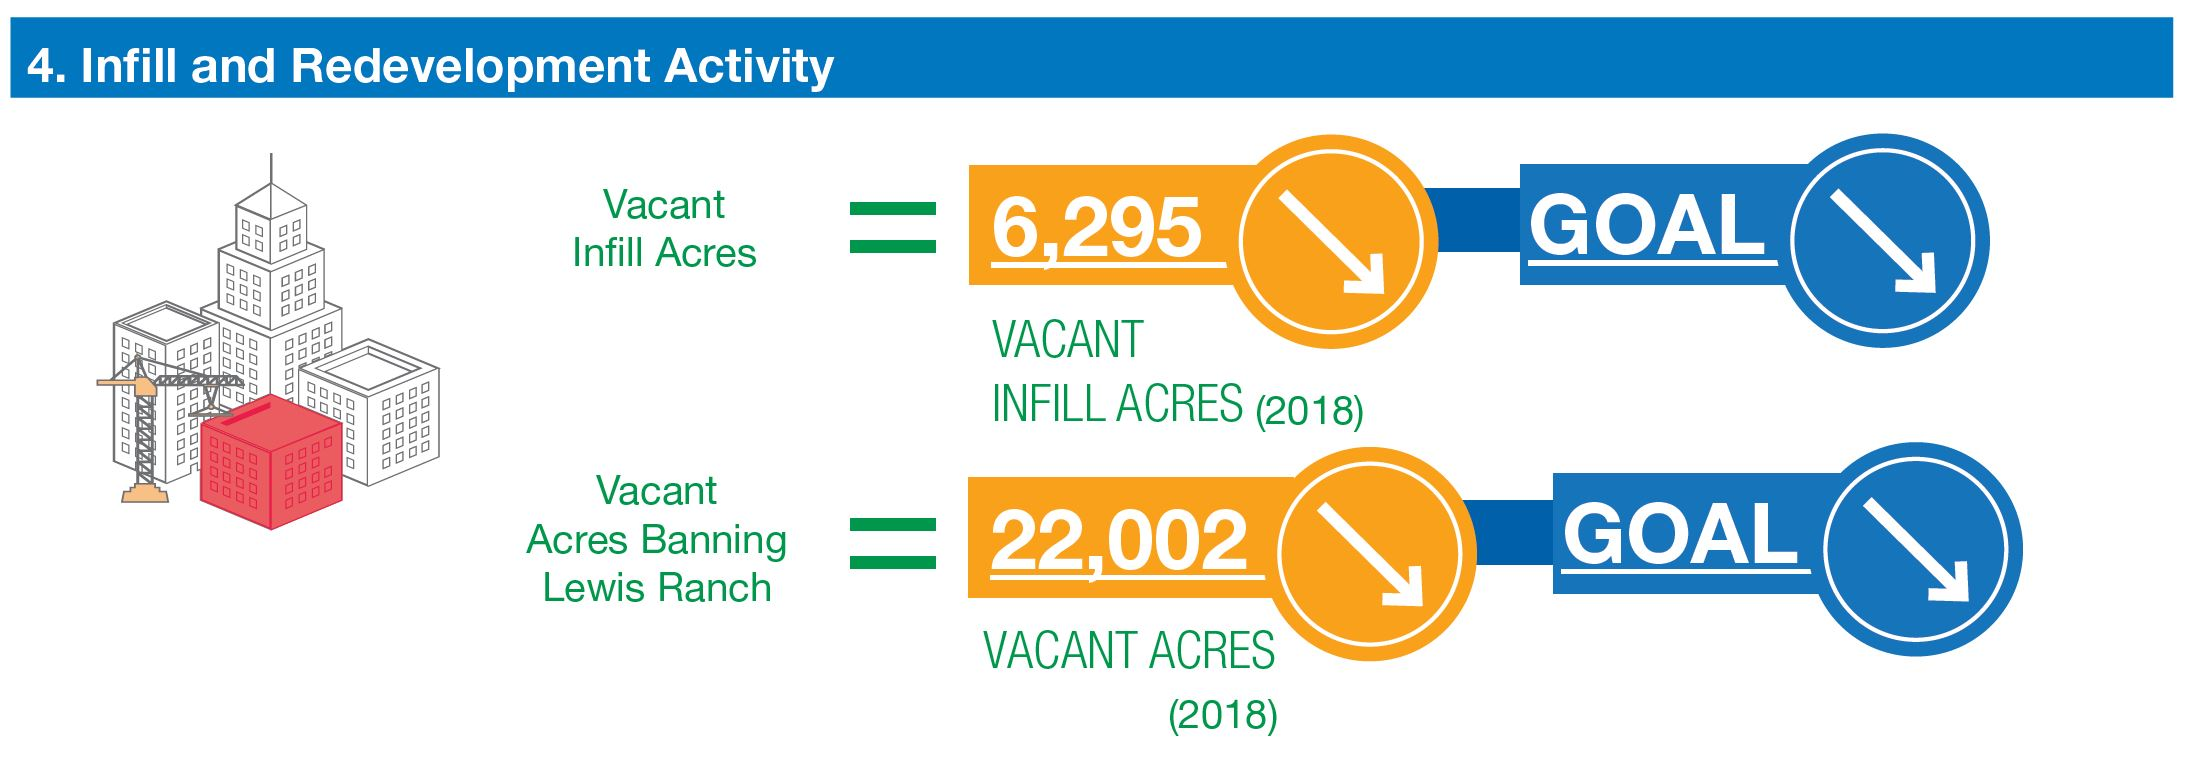 graphic shows number of infill acres declining (goal to decrease) and number of vacant acres in Banning Lewis ranch declining (goal to decline)